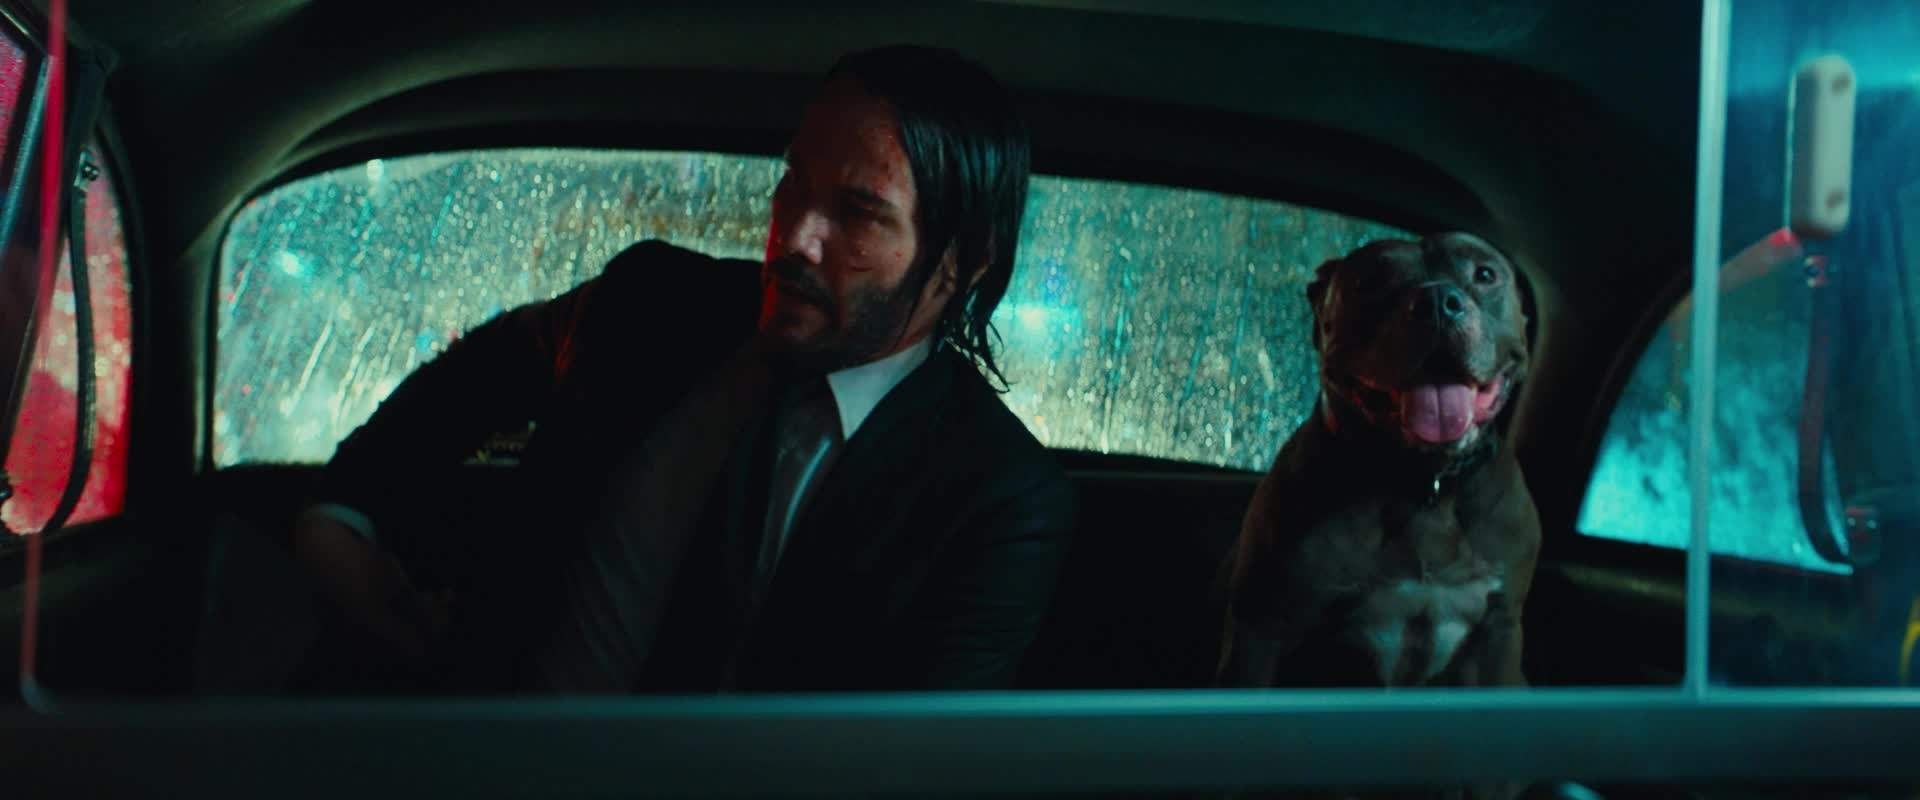 change of plan, john wick, john wick 3, john wick chapter 3, john wick chapter 3 parabellum, keanu reeves, question, what, John Wick Keanu Reeves Change of Plan GIFs